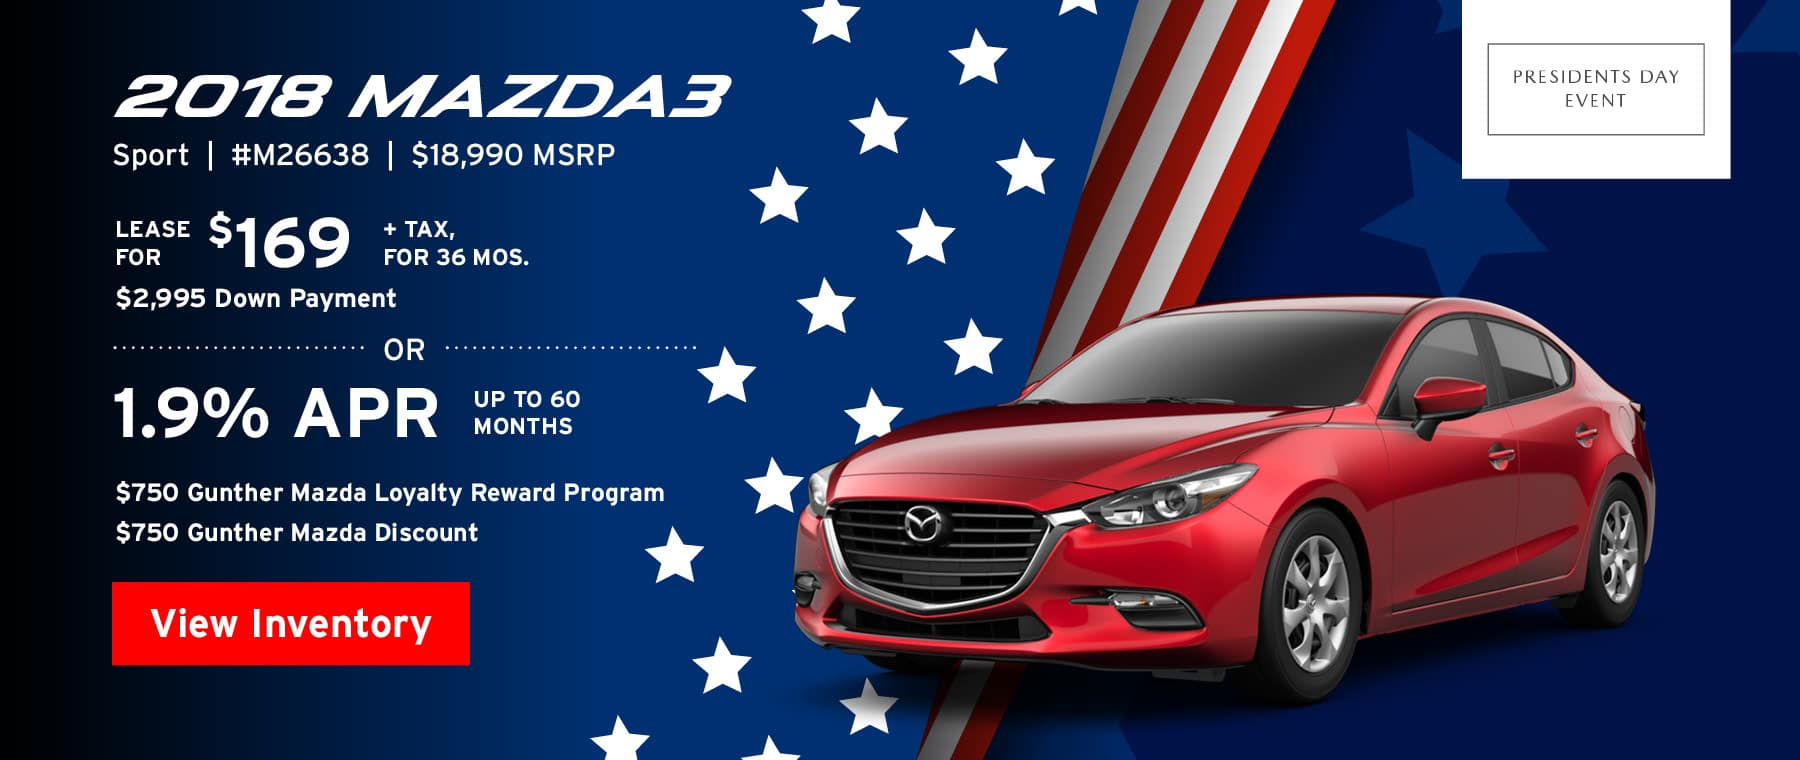 Lease the 2018 Mazda3 Sport for $169, plus tax for 36 months, or 1.9% APR up to 60 months.